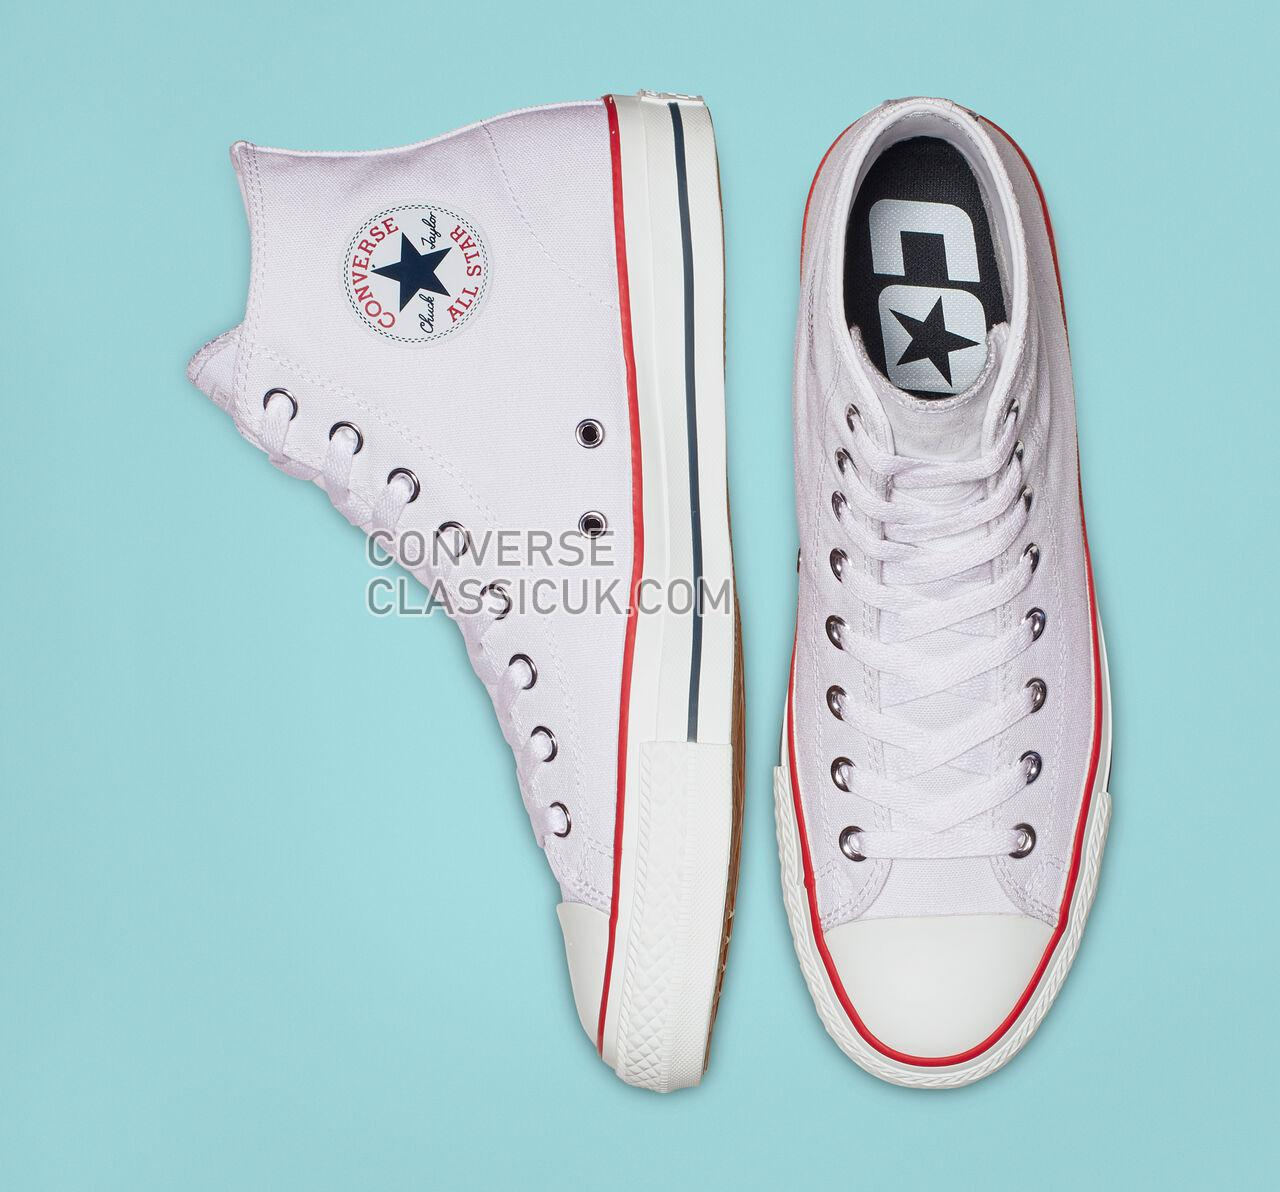 Converse CTAS Pro High Top Mens Womens Unisex 159698C White/Red/Insignia Blue Shoes